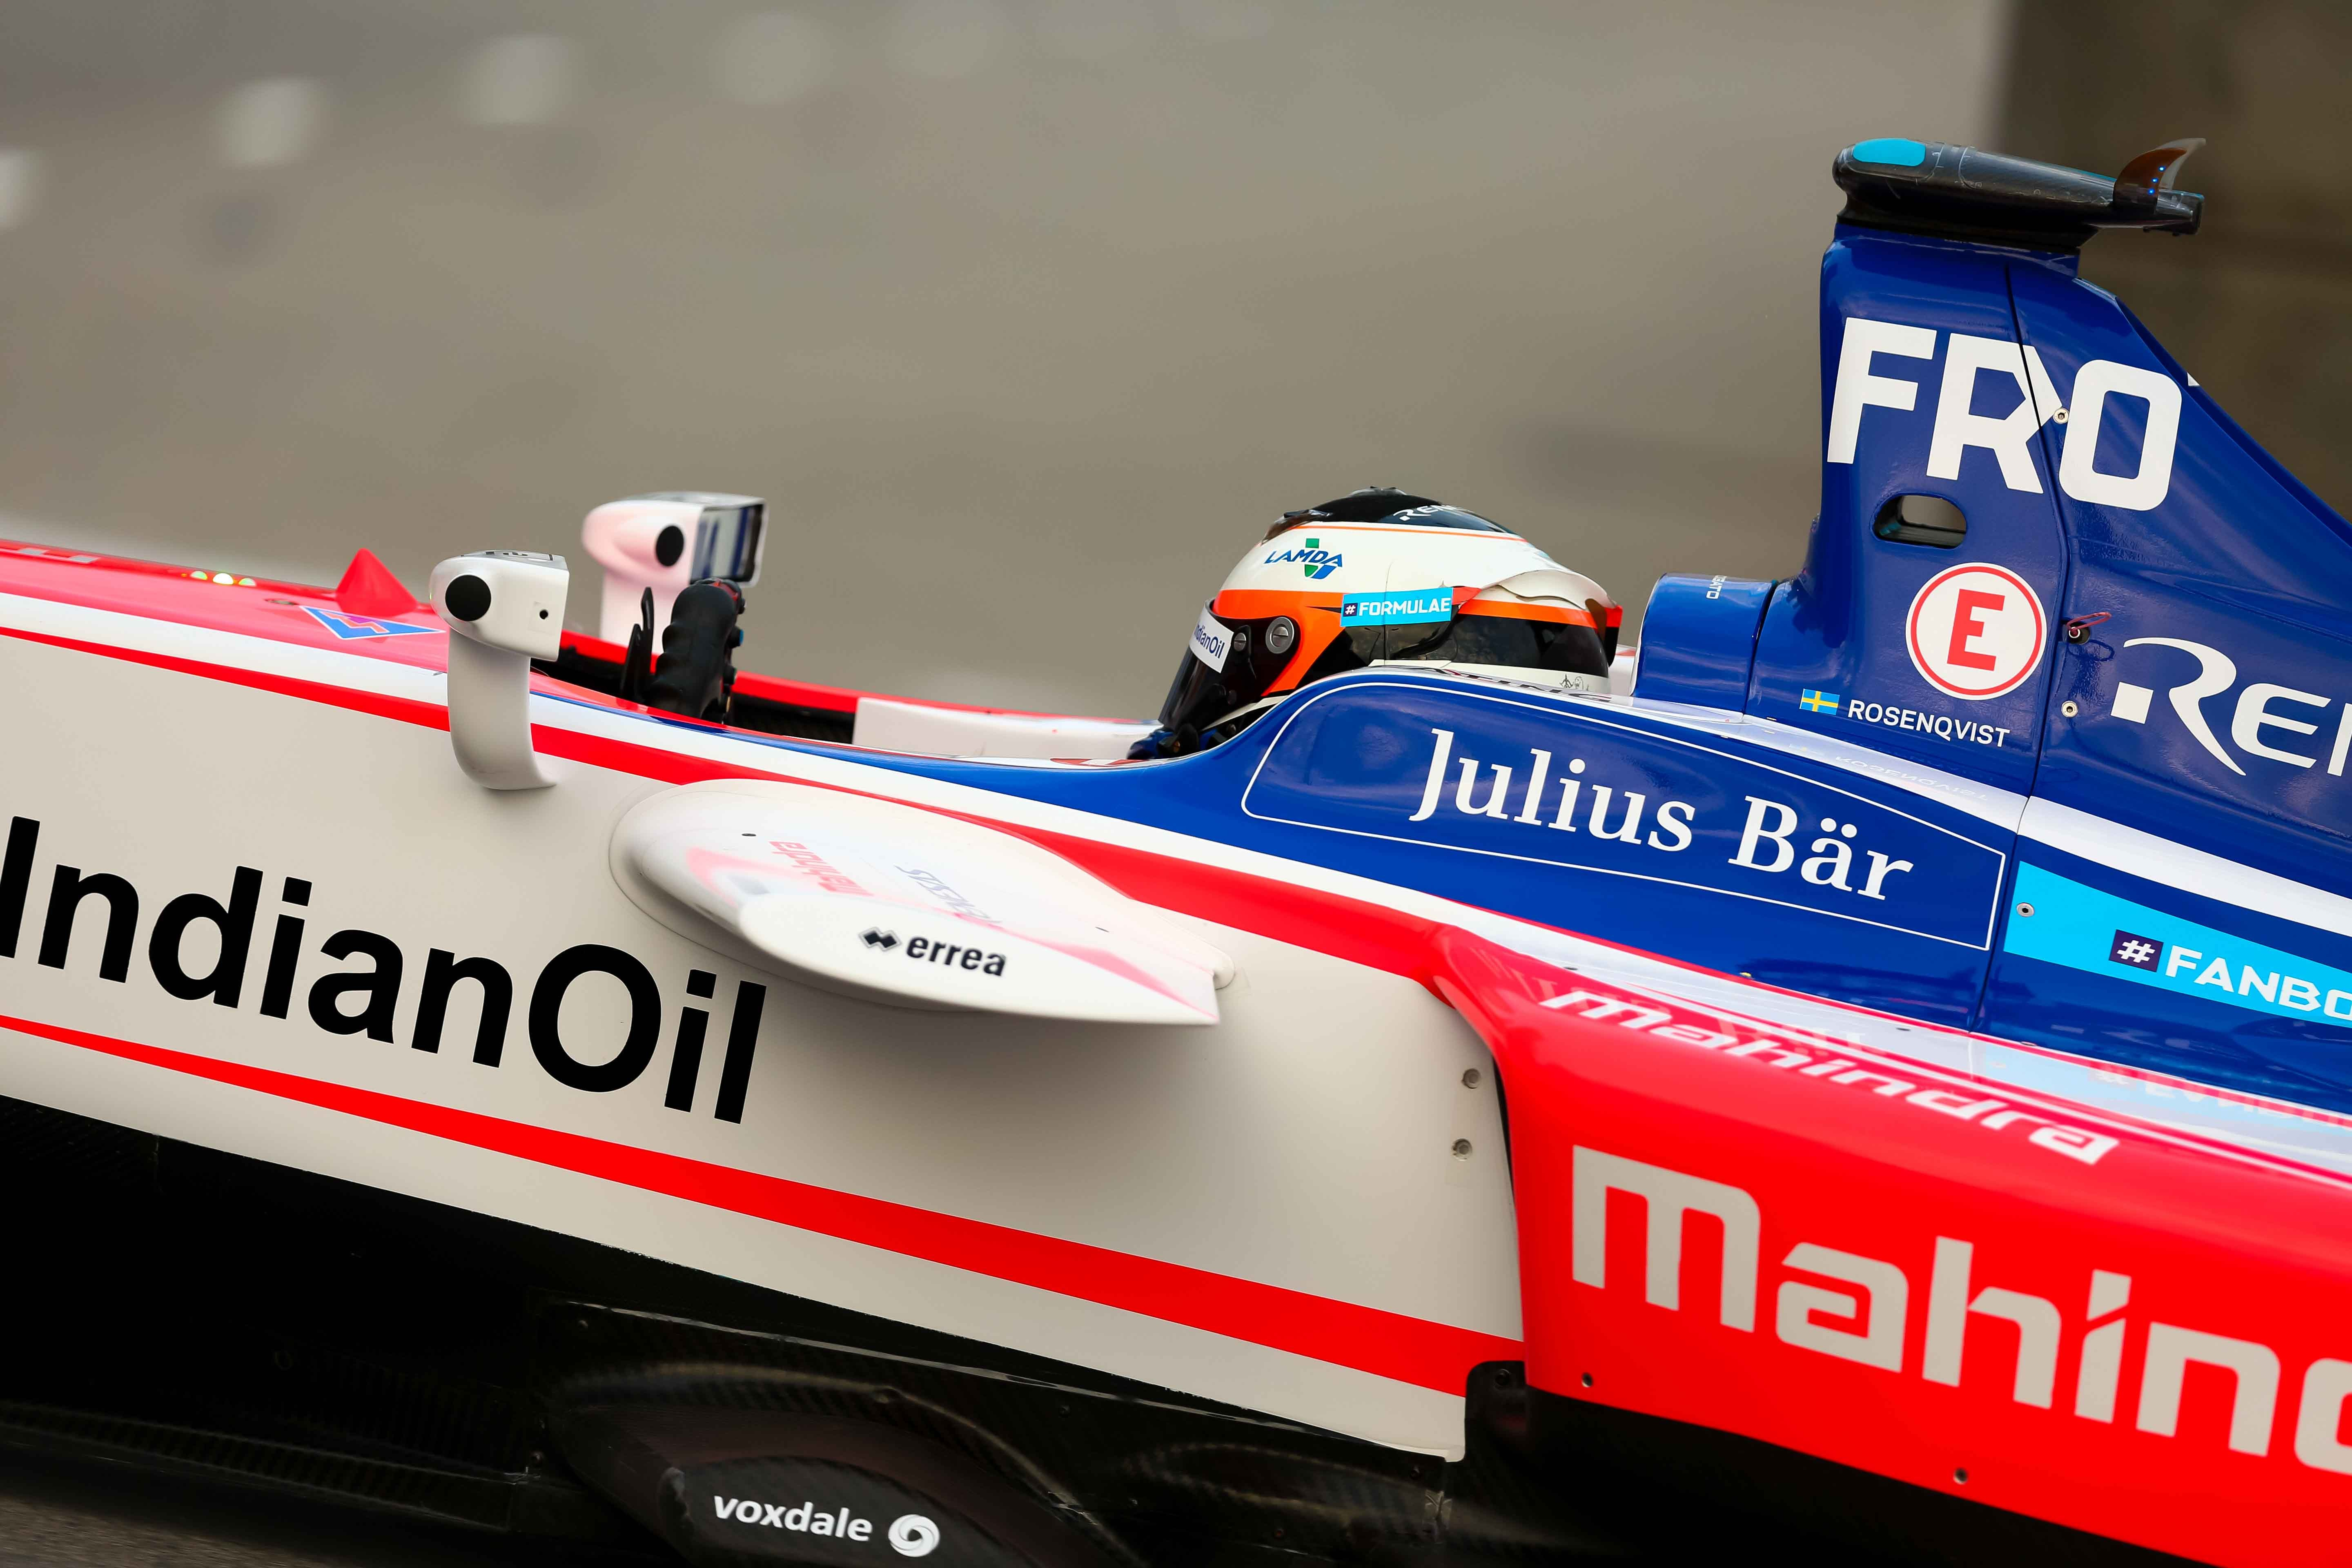 Victory for Mahindra in the first round of the Formula E Championship in Hong Kong